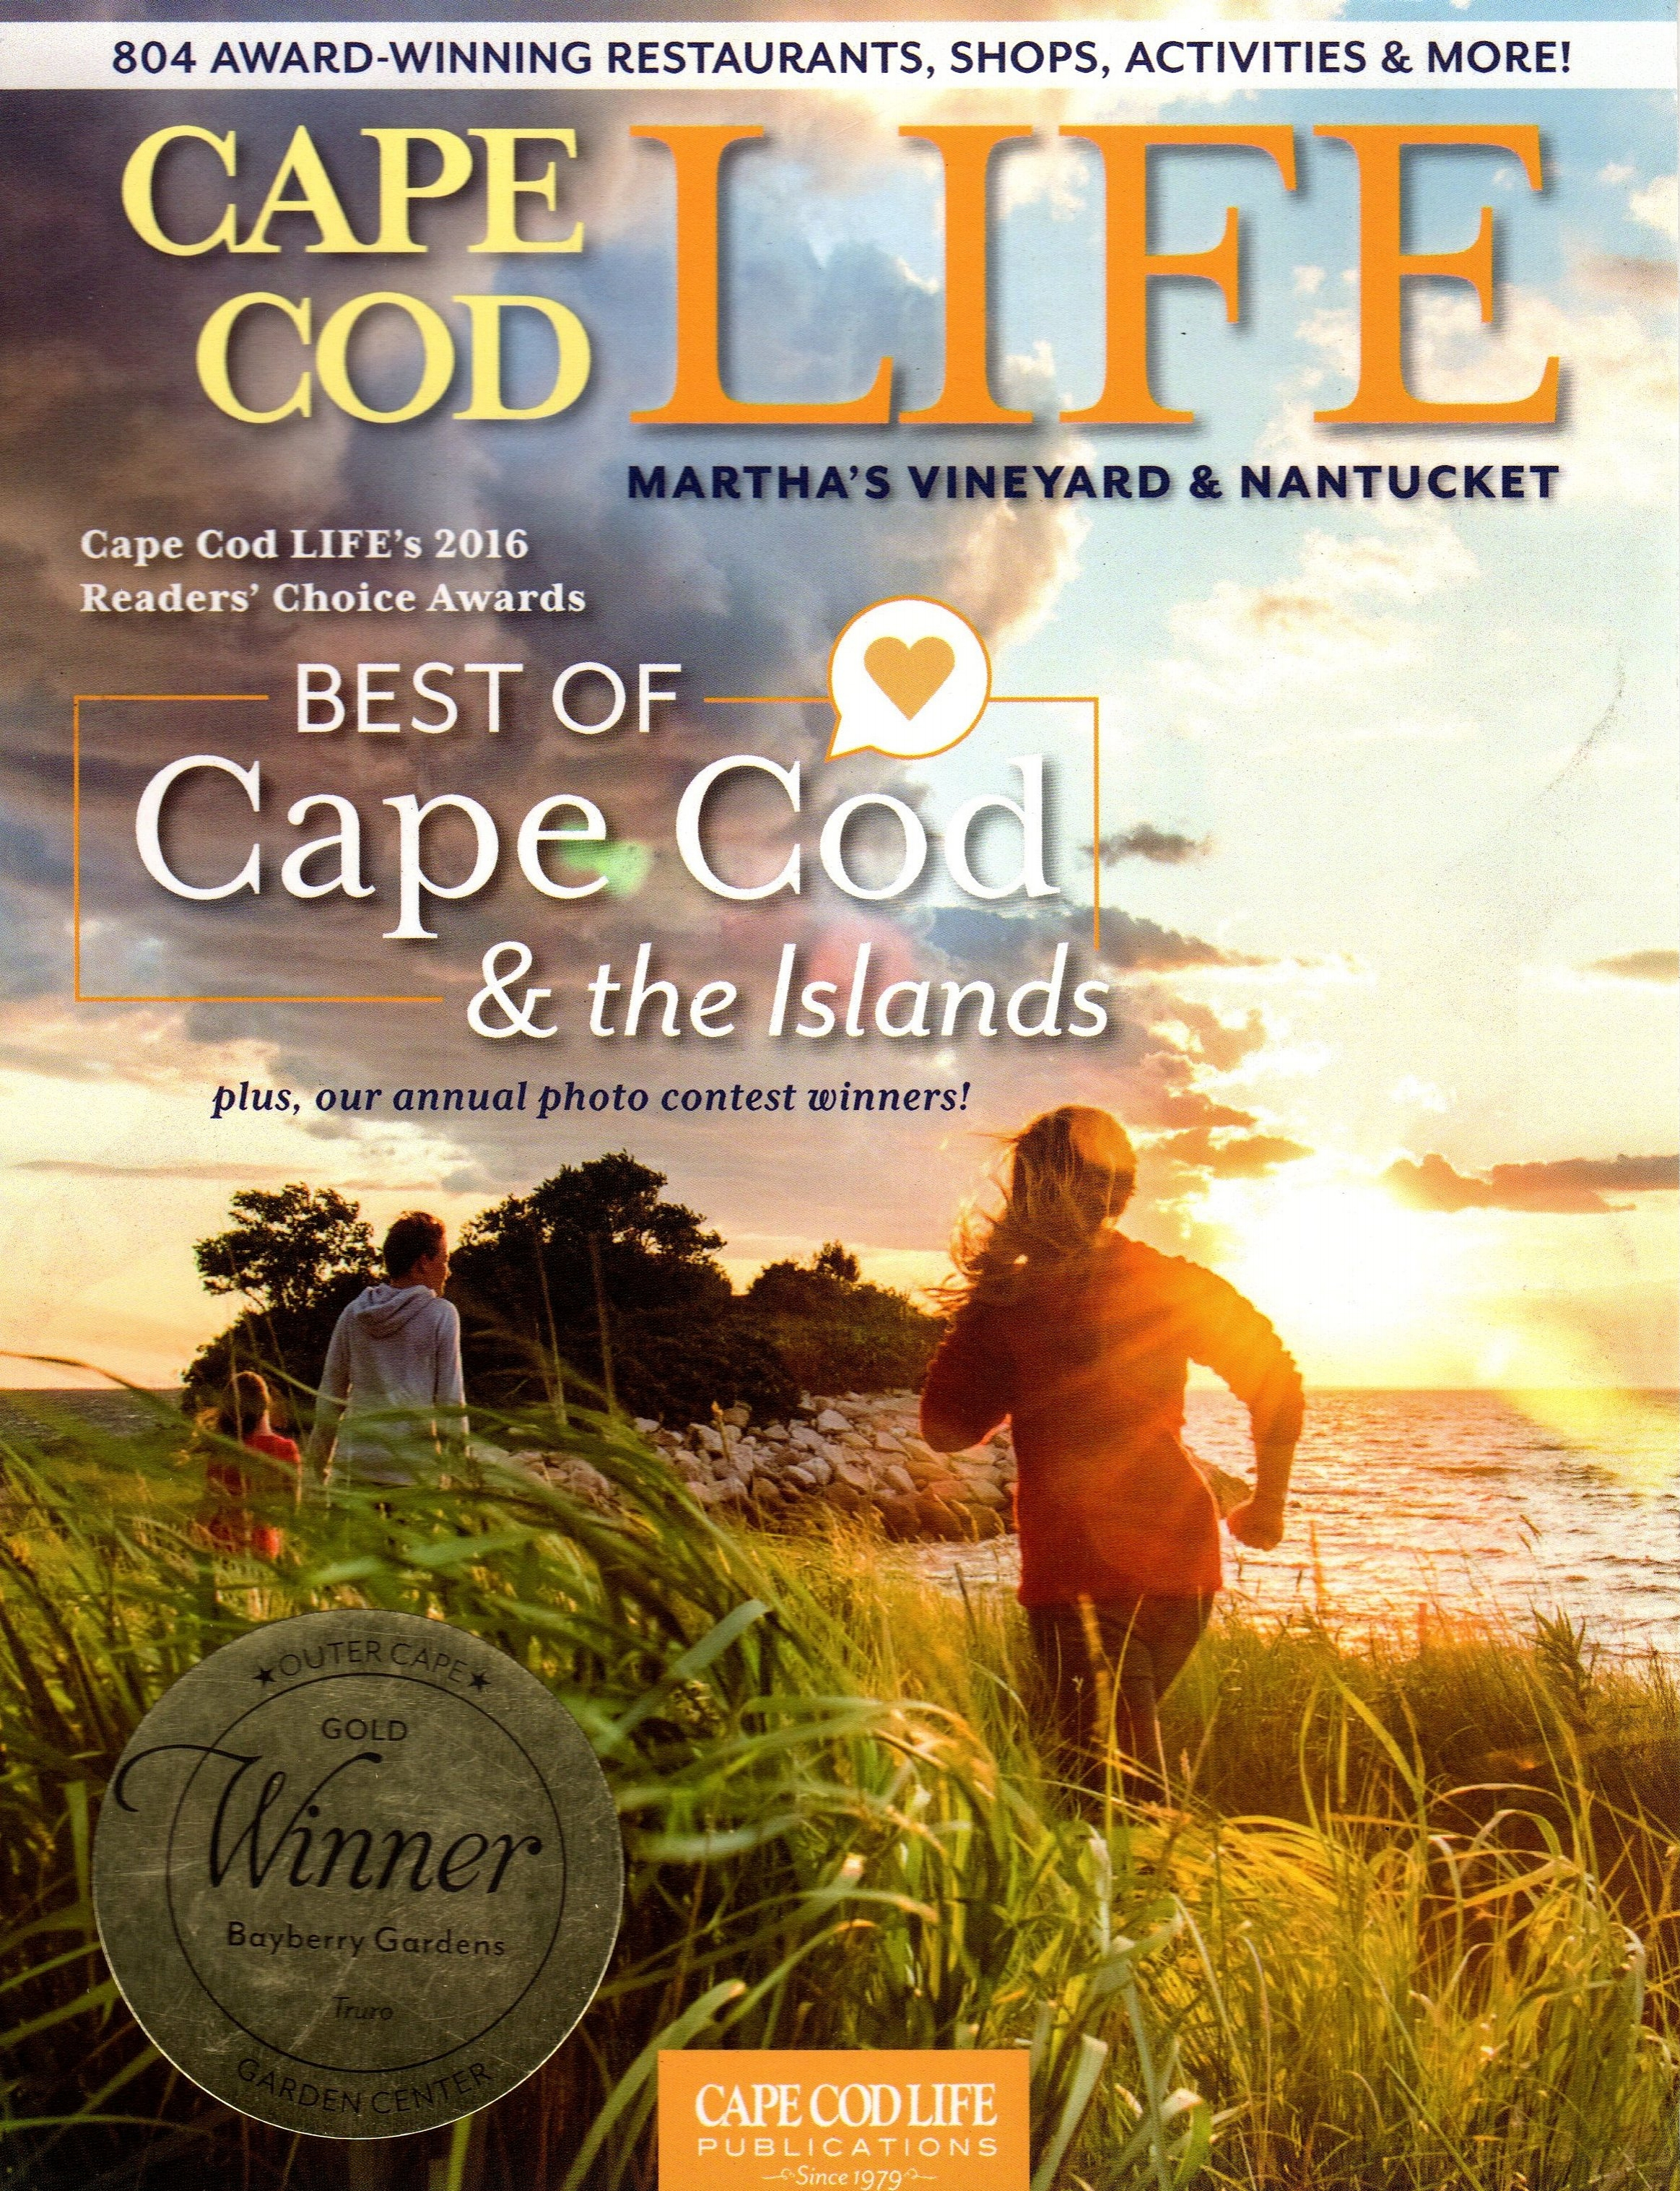 CAPE COD LIFE BEST OF 2016